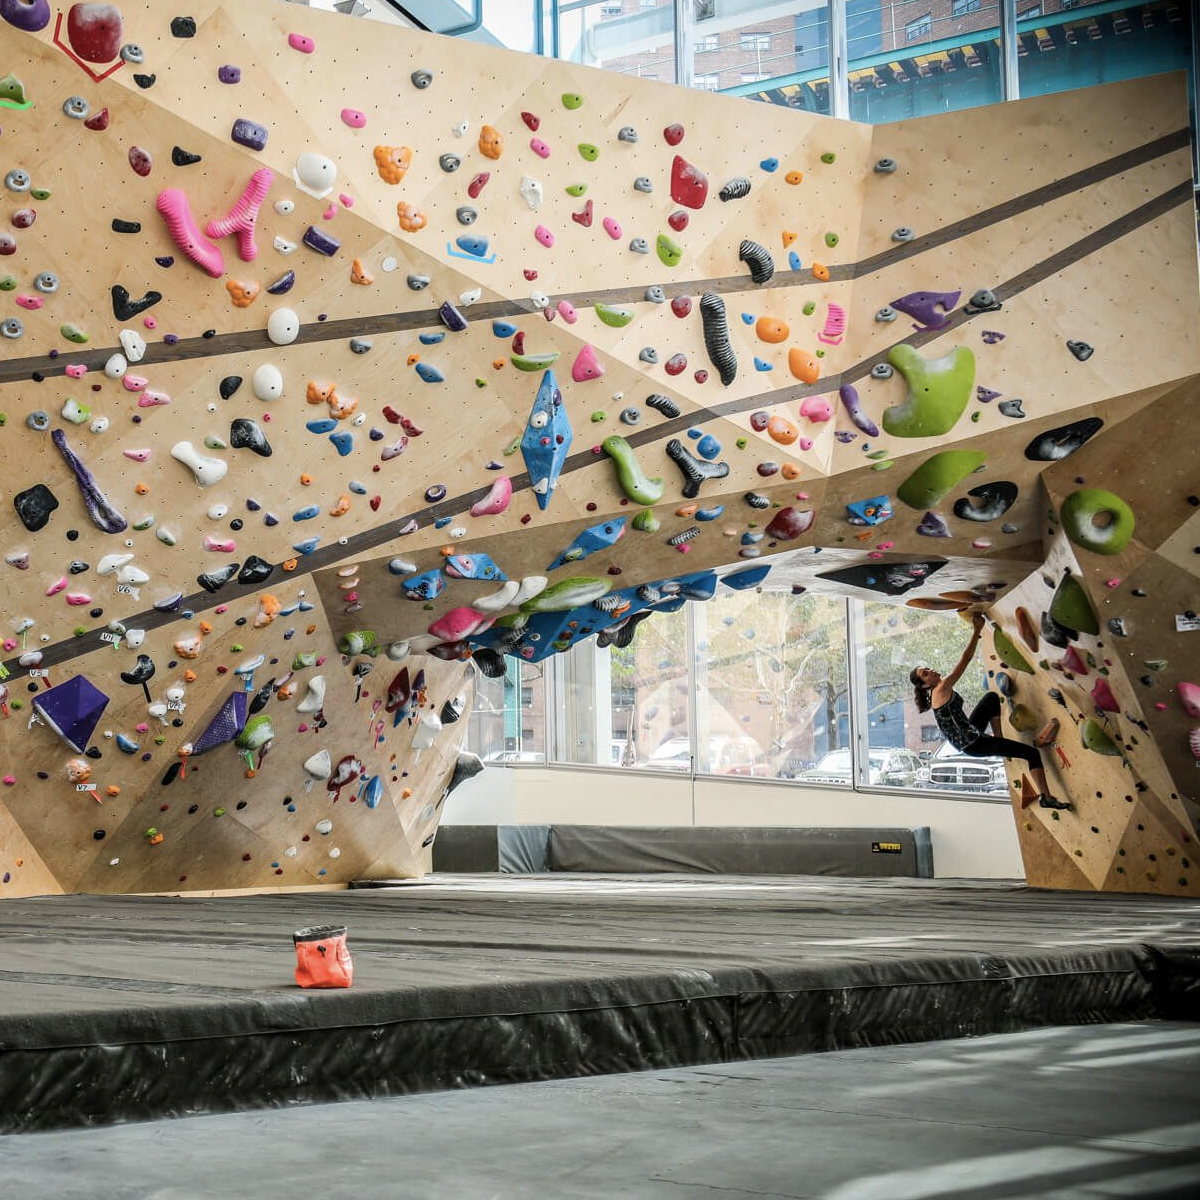 PROGRAMS  - FITNESSBOULDERING 101 CLASSESSAVE TIME - SIGN WAIVER ONLINEMEMBERSHIP + PERKSPRIVATE INSTRUCTION SHOP ONLINE